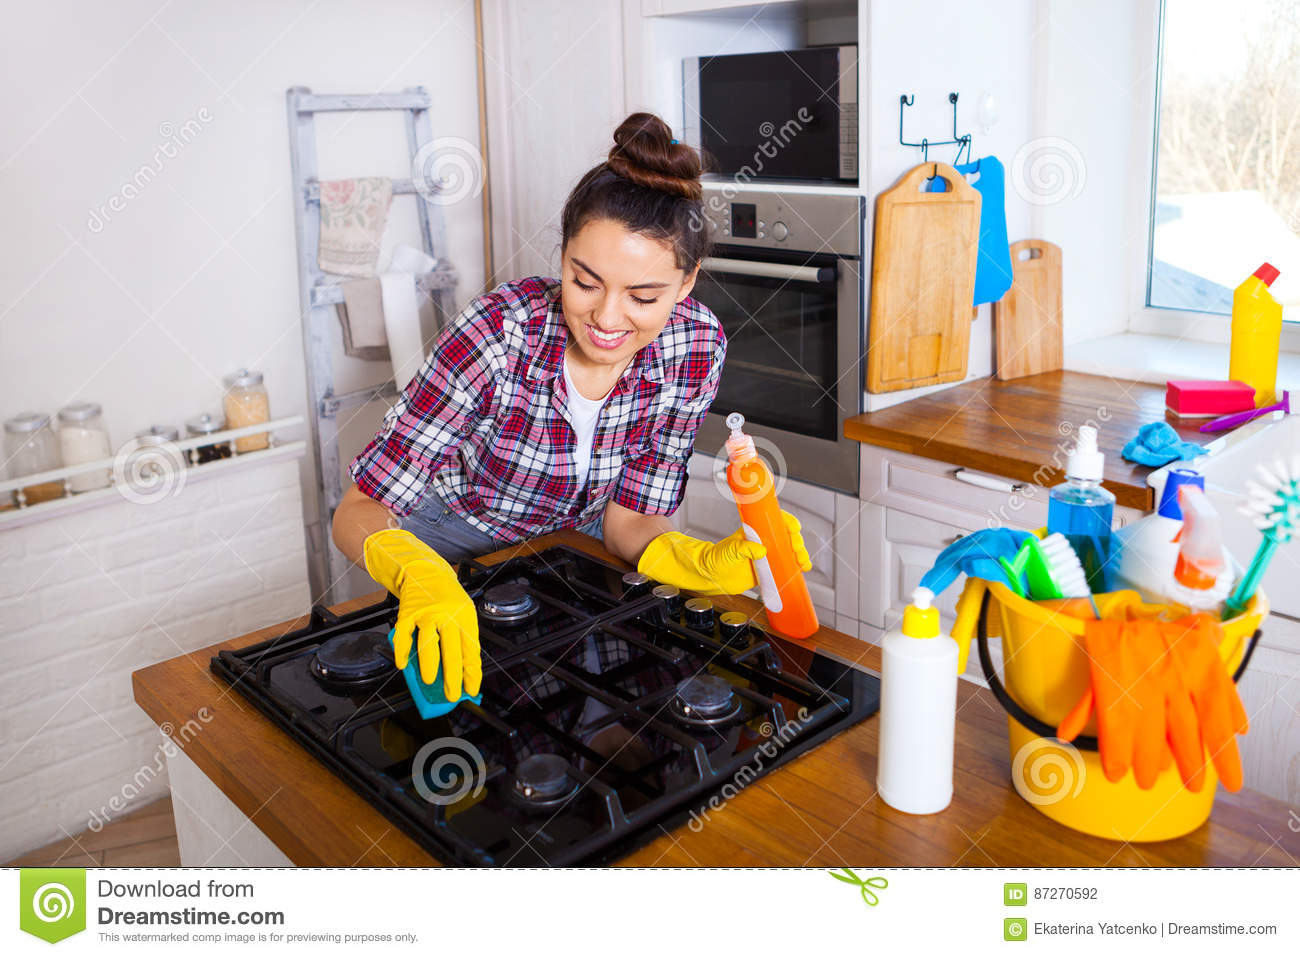 Young girl cleaning house congratulate, remarkable